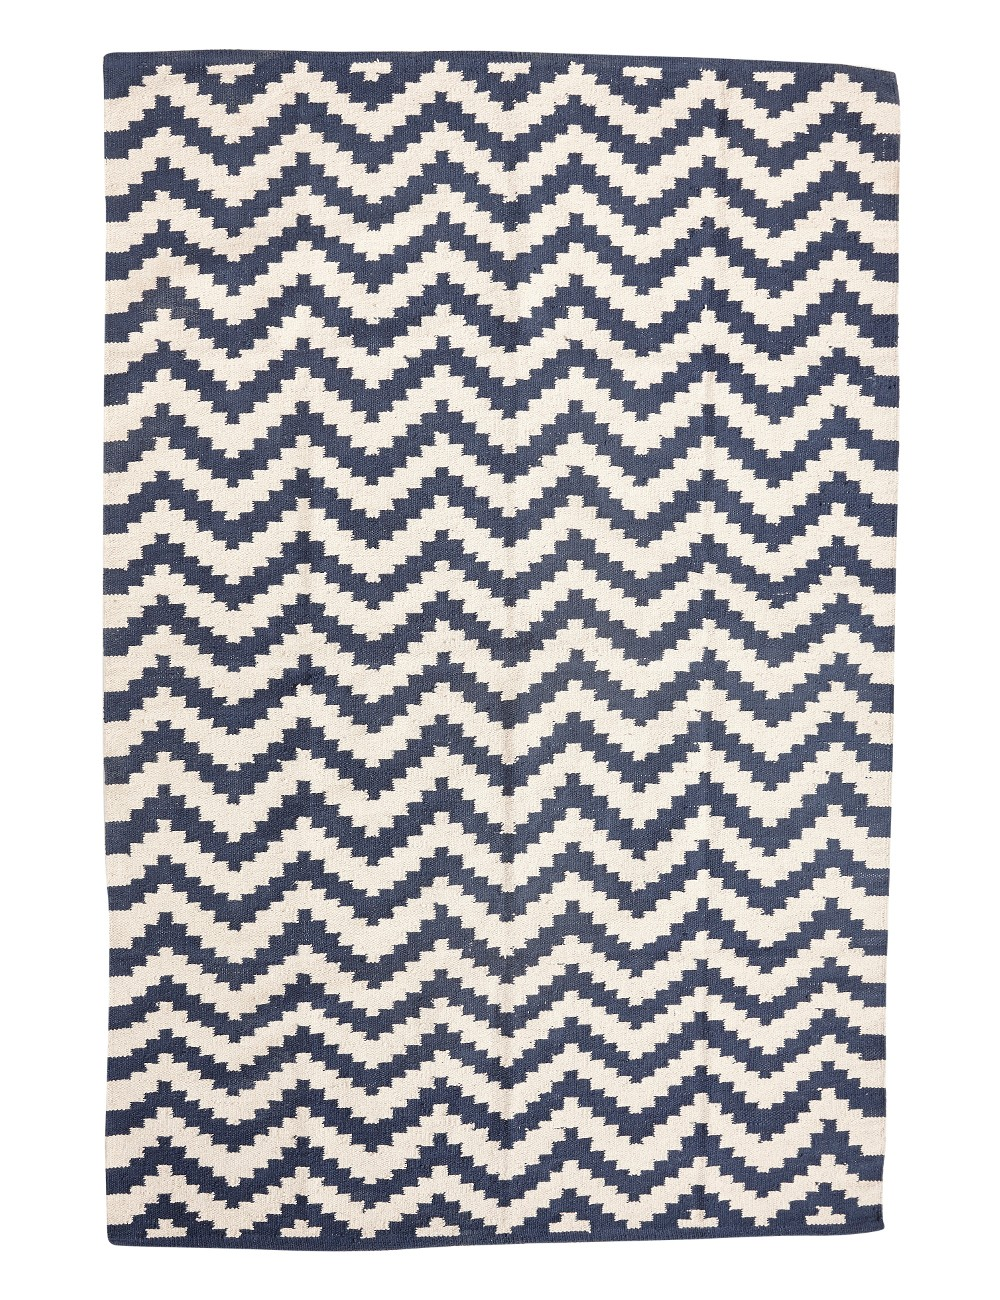 Grey Chevron Bath Rug | Chevron Rug | Grey and White Chevron Rugs